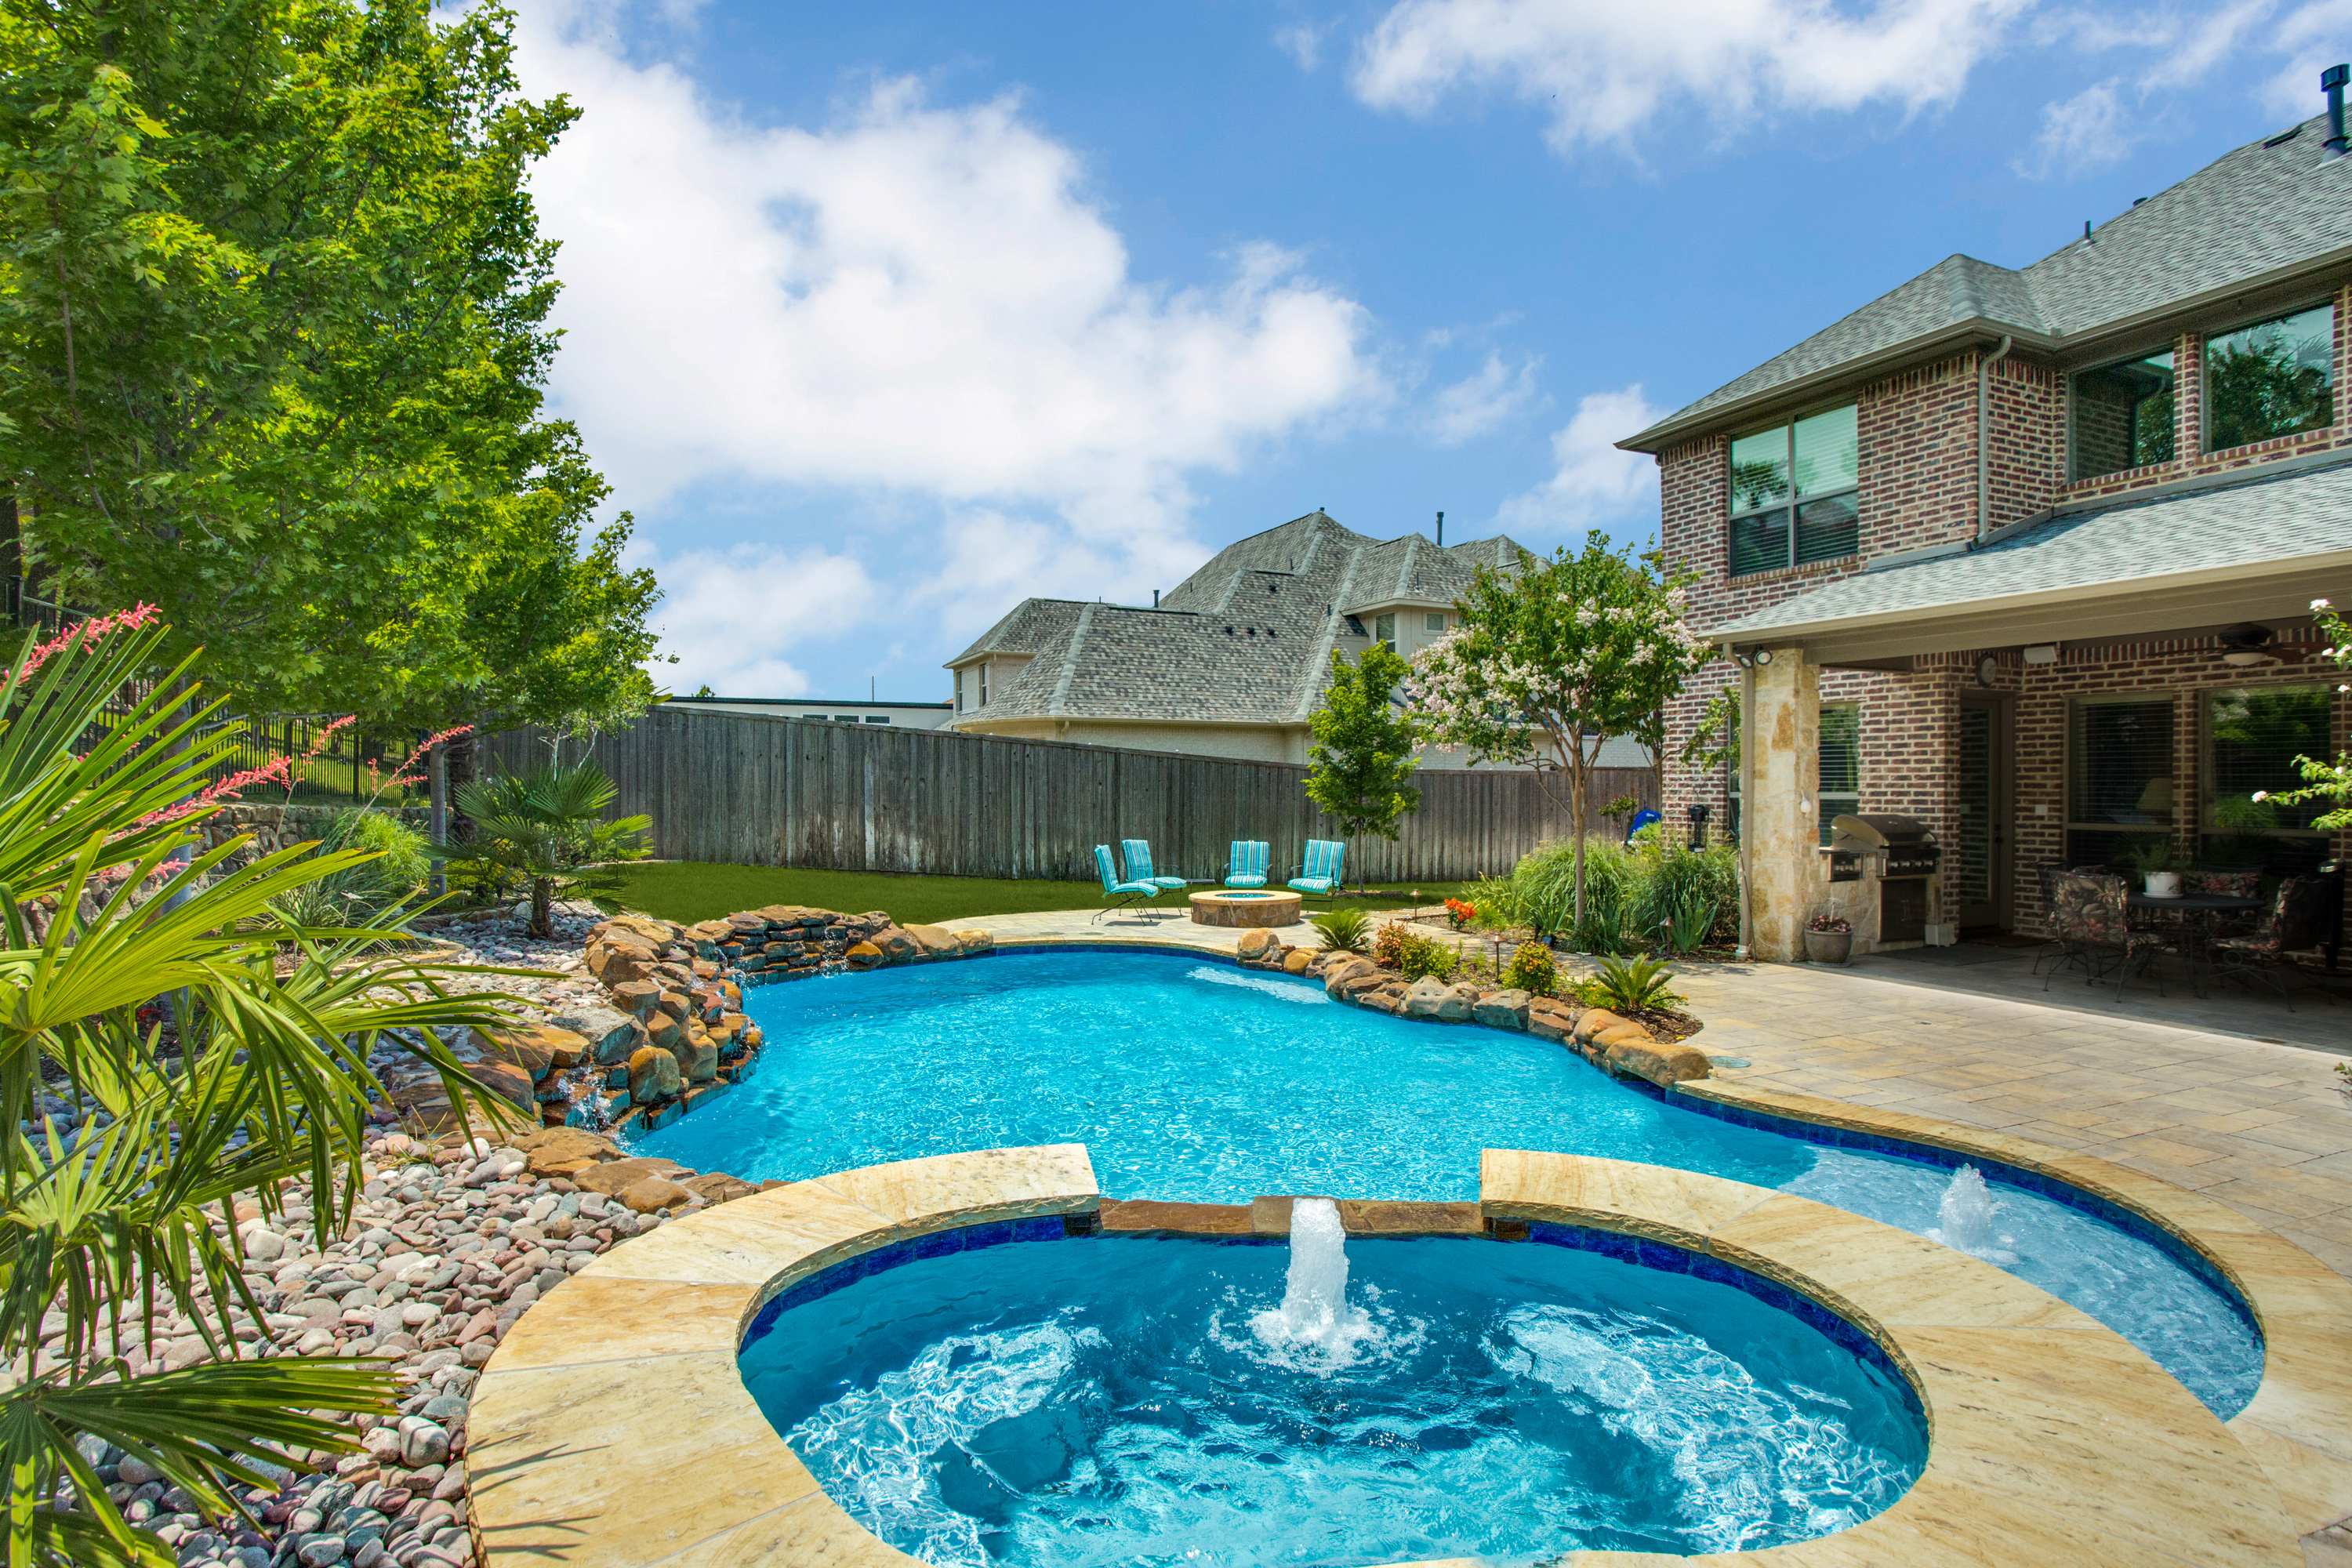 Gold_Medal_Pools-Residential_Pool_Free_Form_Style-Plano-TX-5